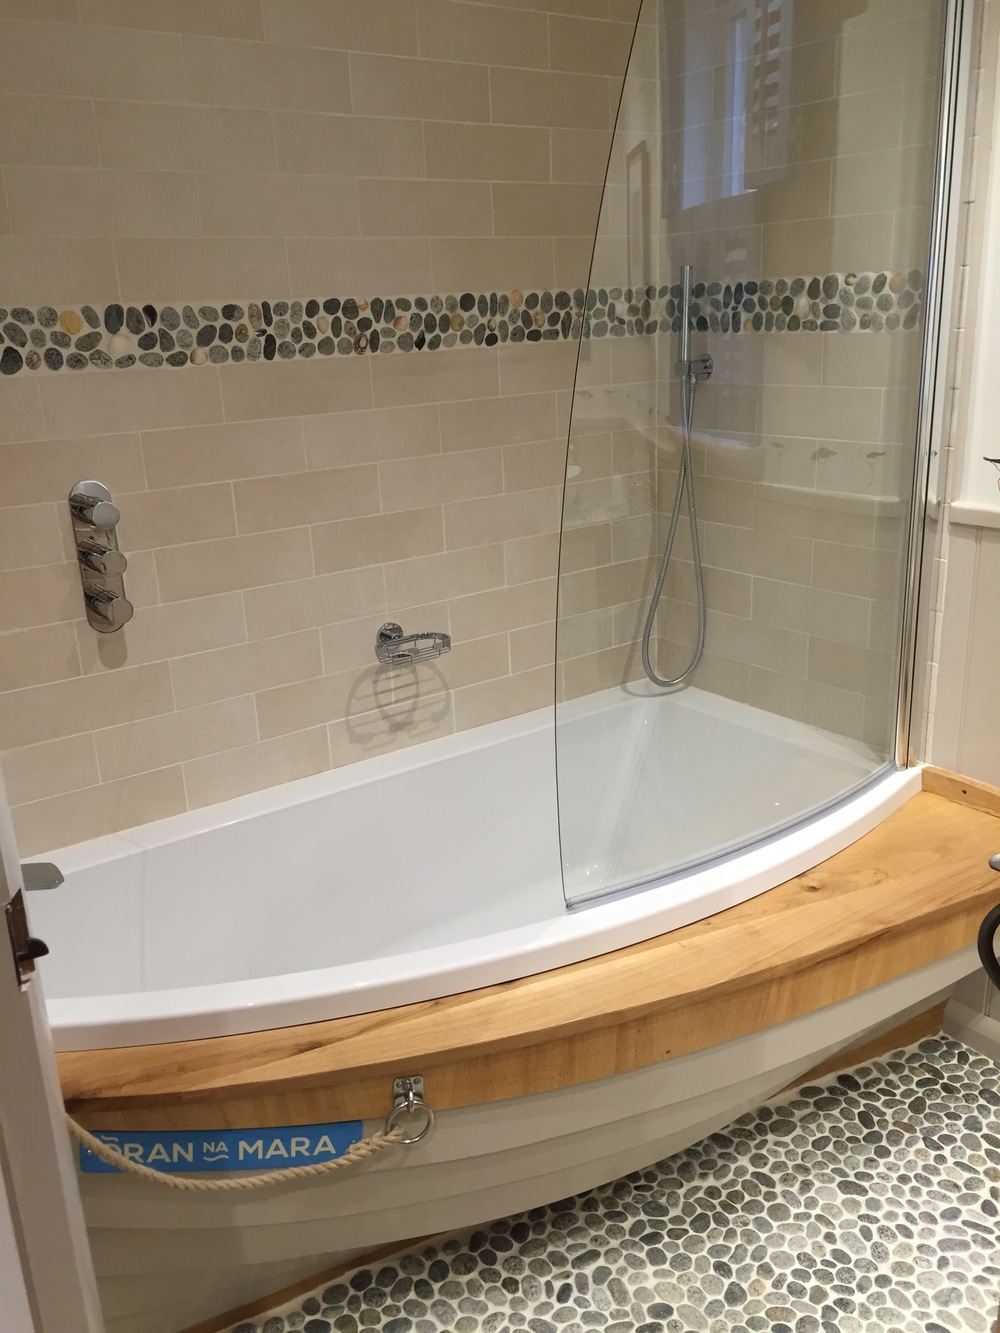 The bath surround was created by a boat builder from the islands